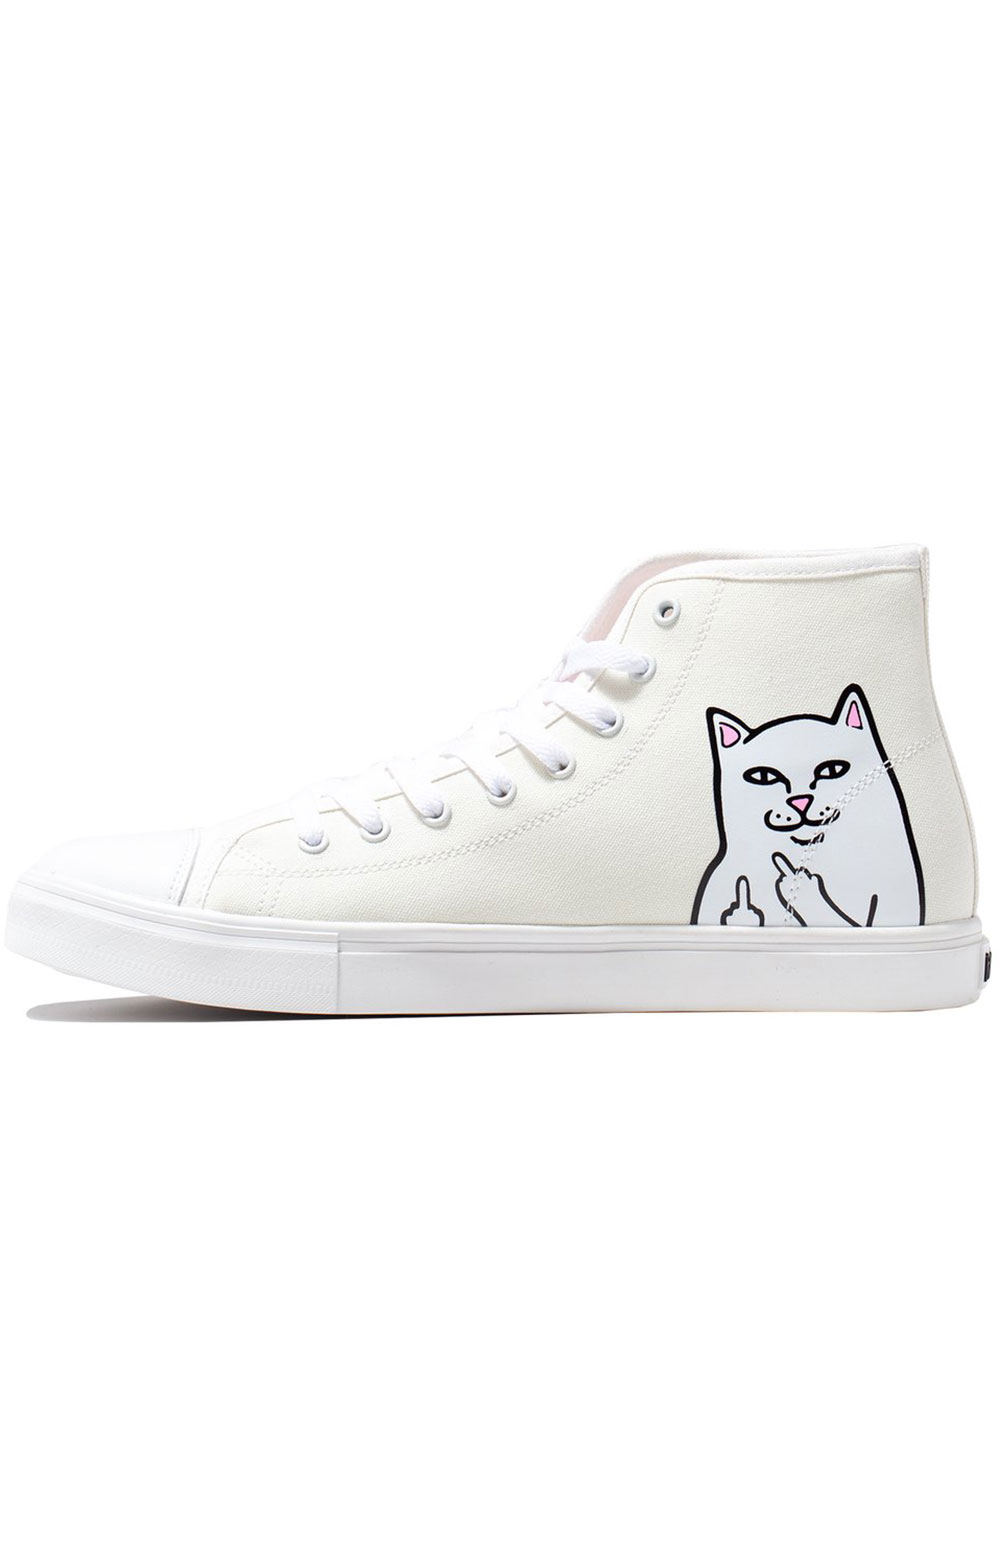 Lord Nermal UV Activated High Tops - Blue/Fuschia  4